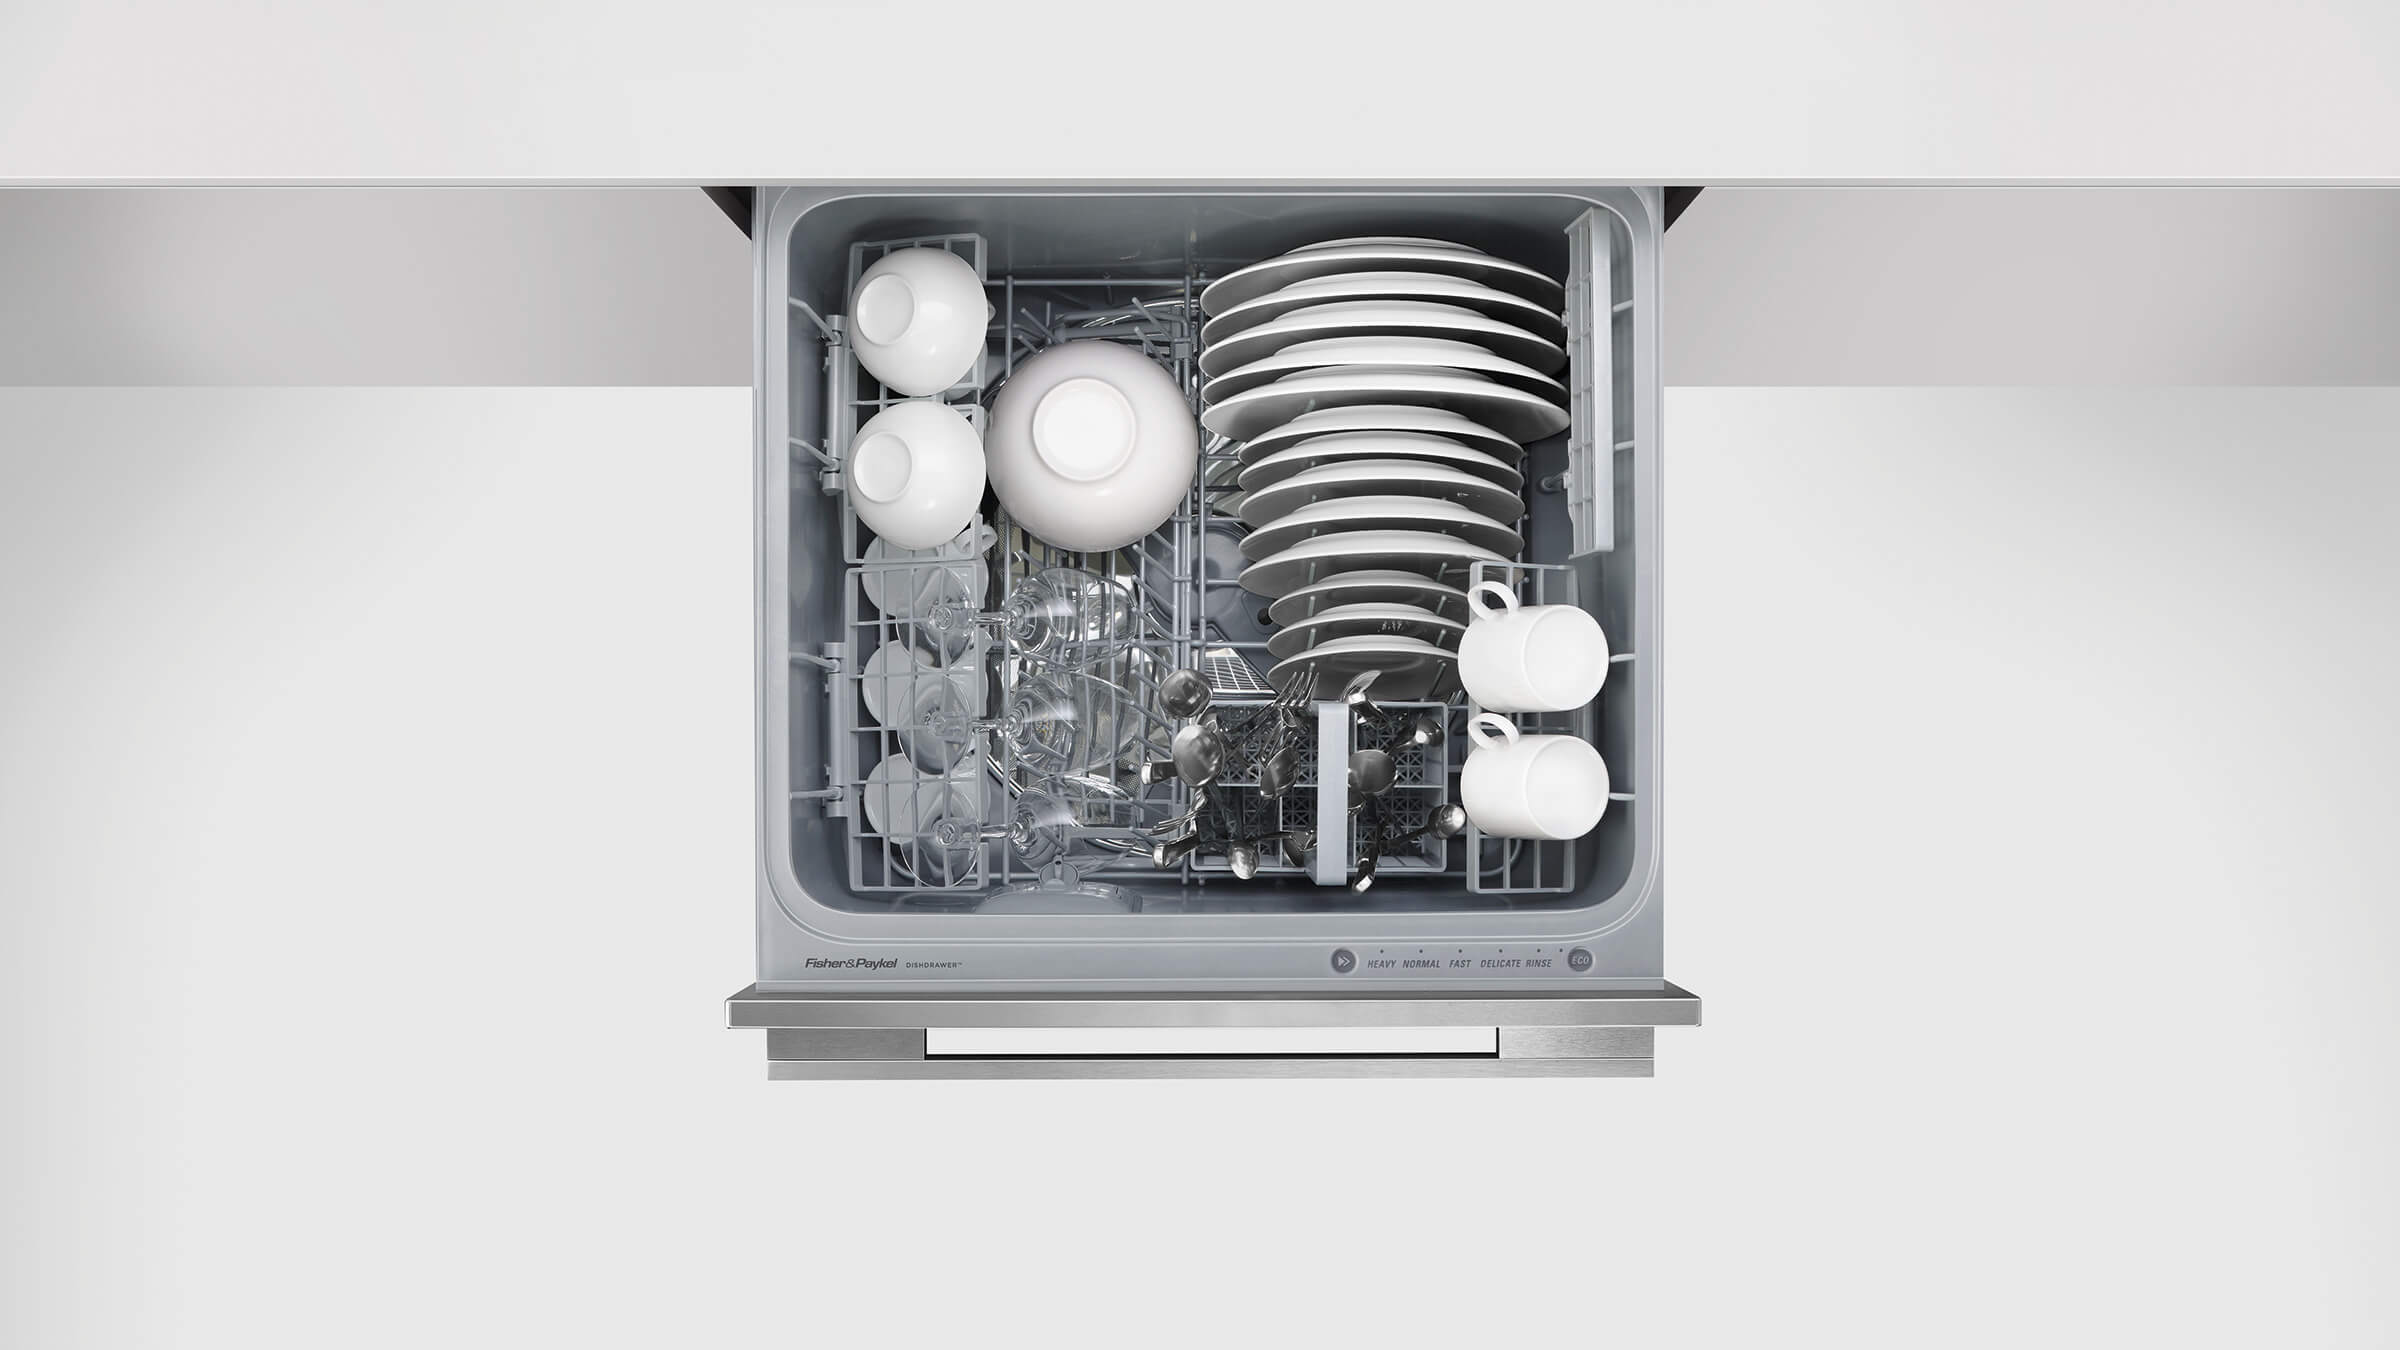 Fisher and paykel 2 drawer dishwasher - Compare Door And Drawer Dishwashers